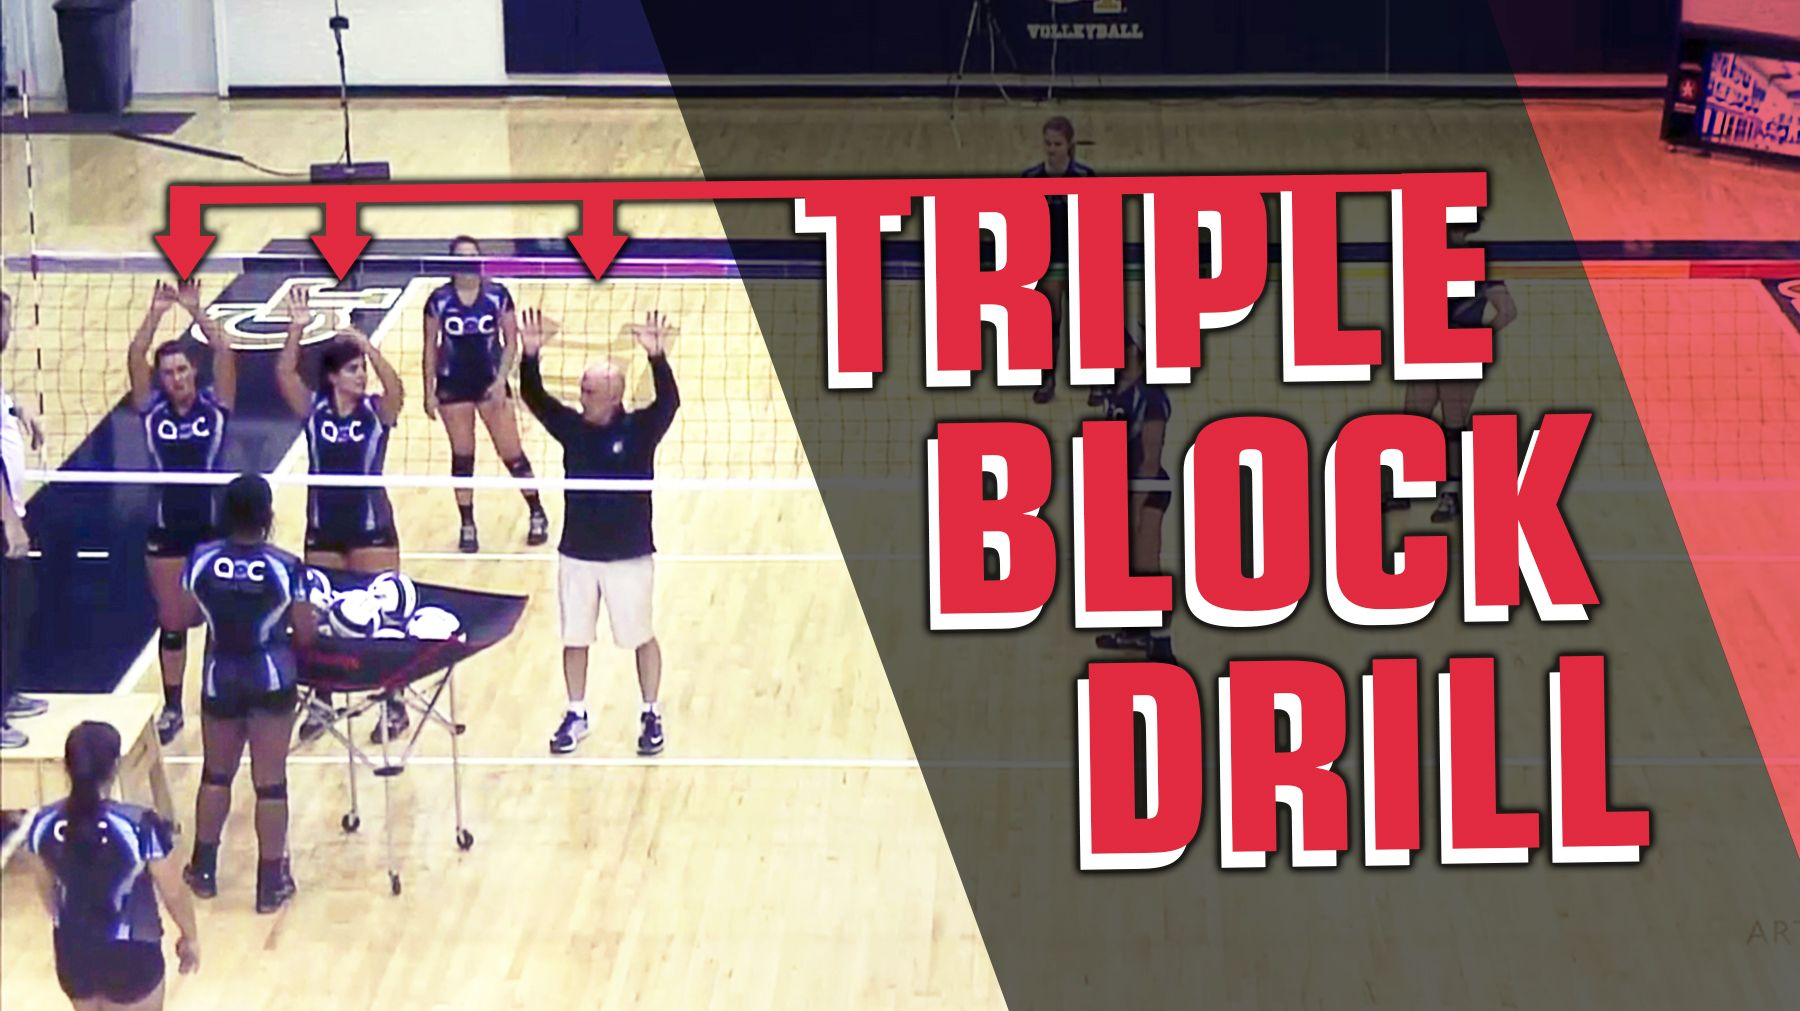 Blocking Fundamentals Triple Block Drill The Art Of Coaching Volleyball Drill Coaching Volleyball Coaching